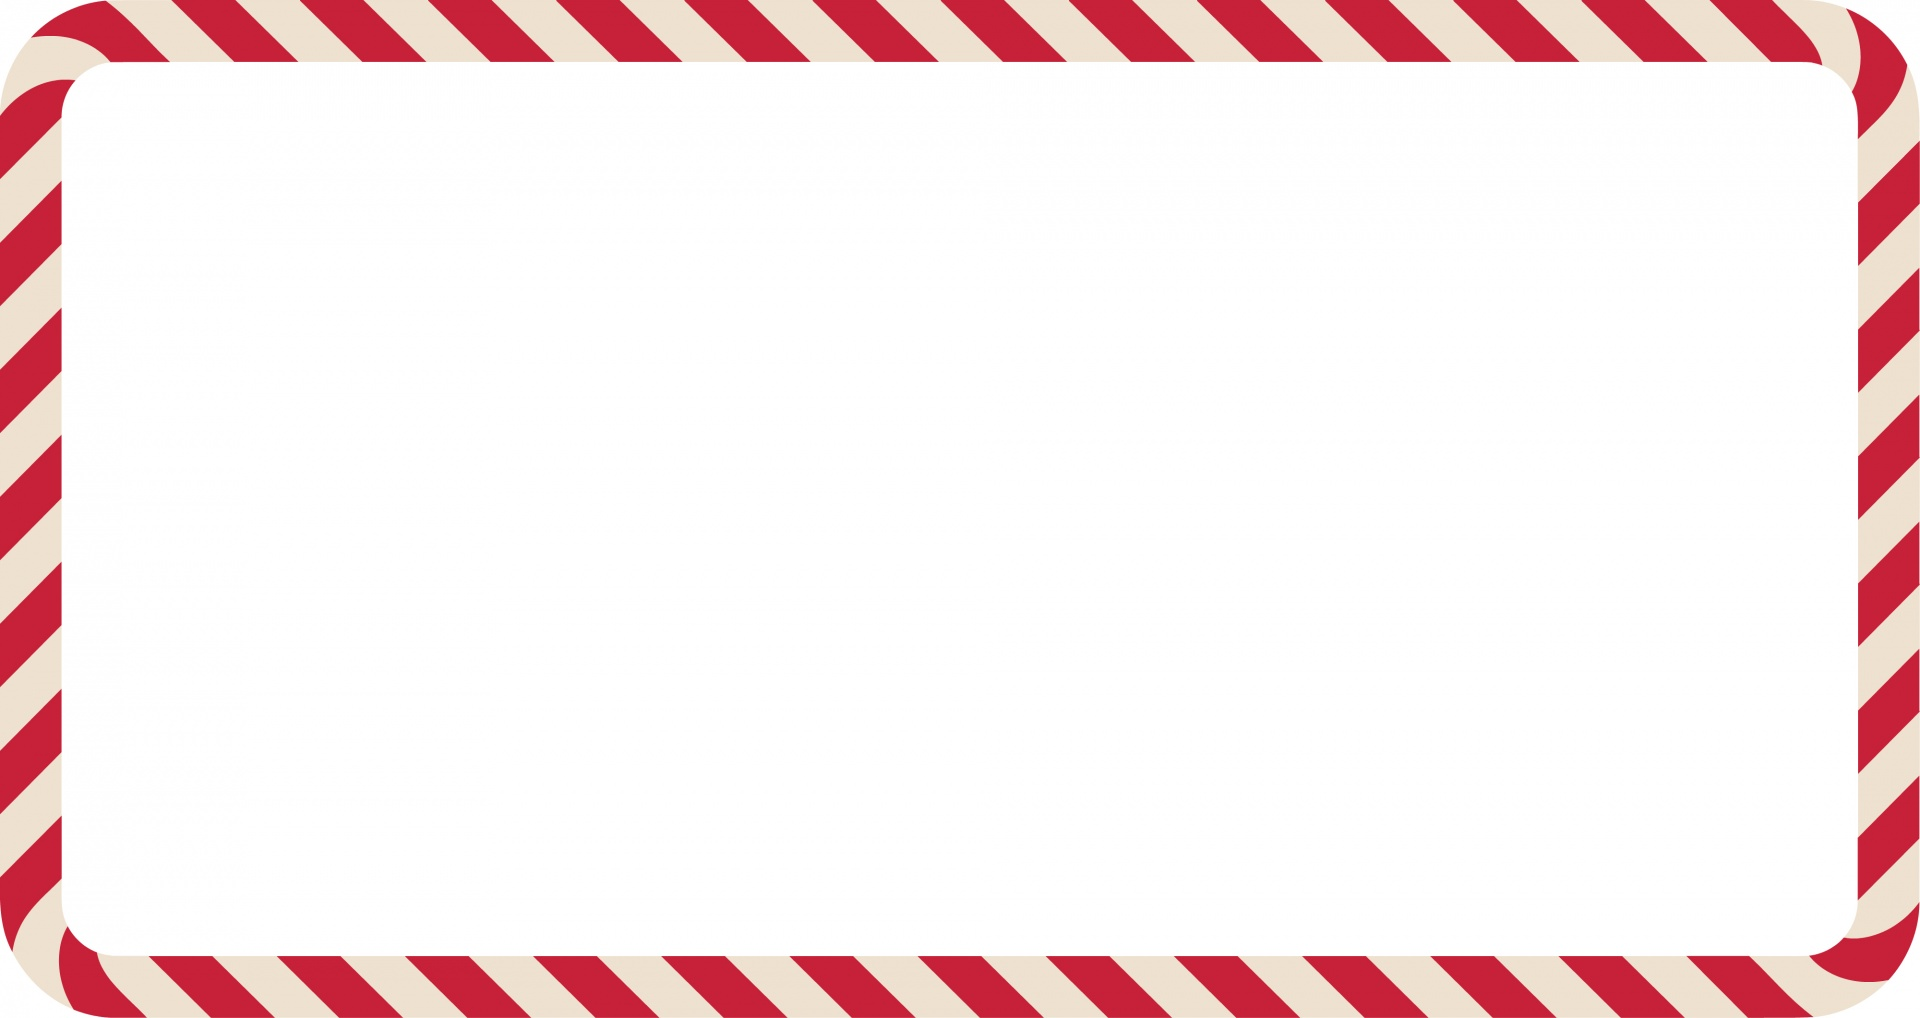 Candy Cane Frame Landscape Free Stock Photo